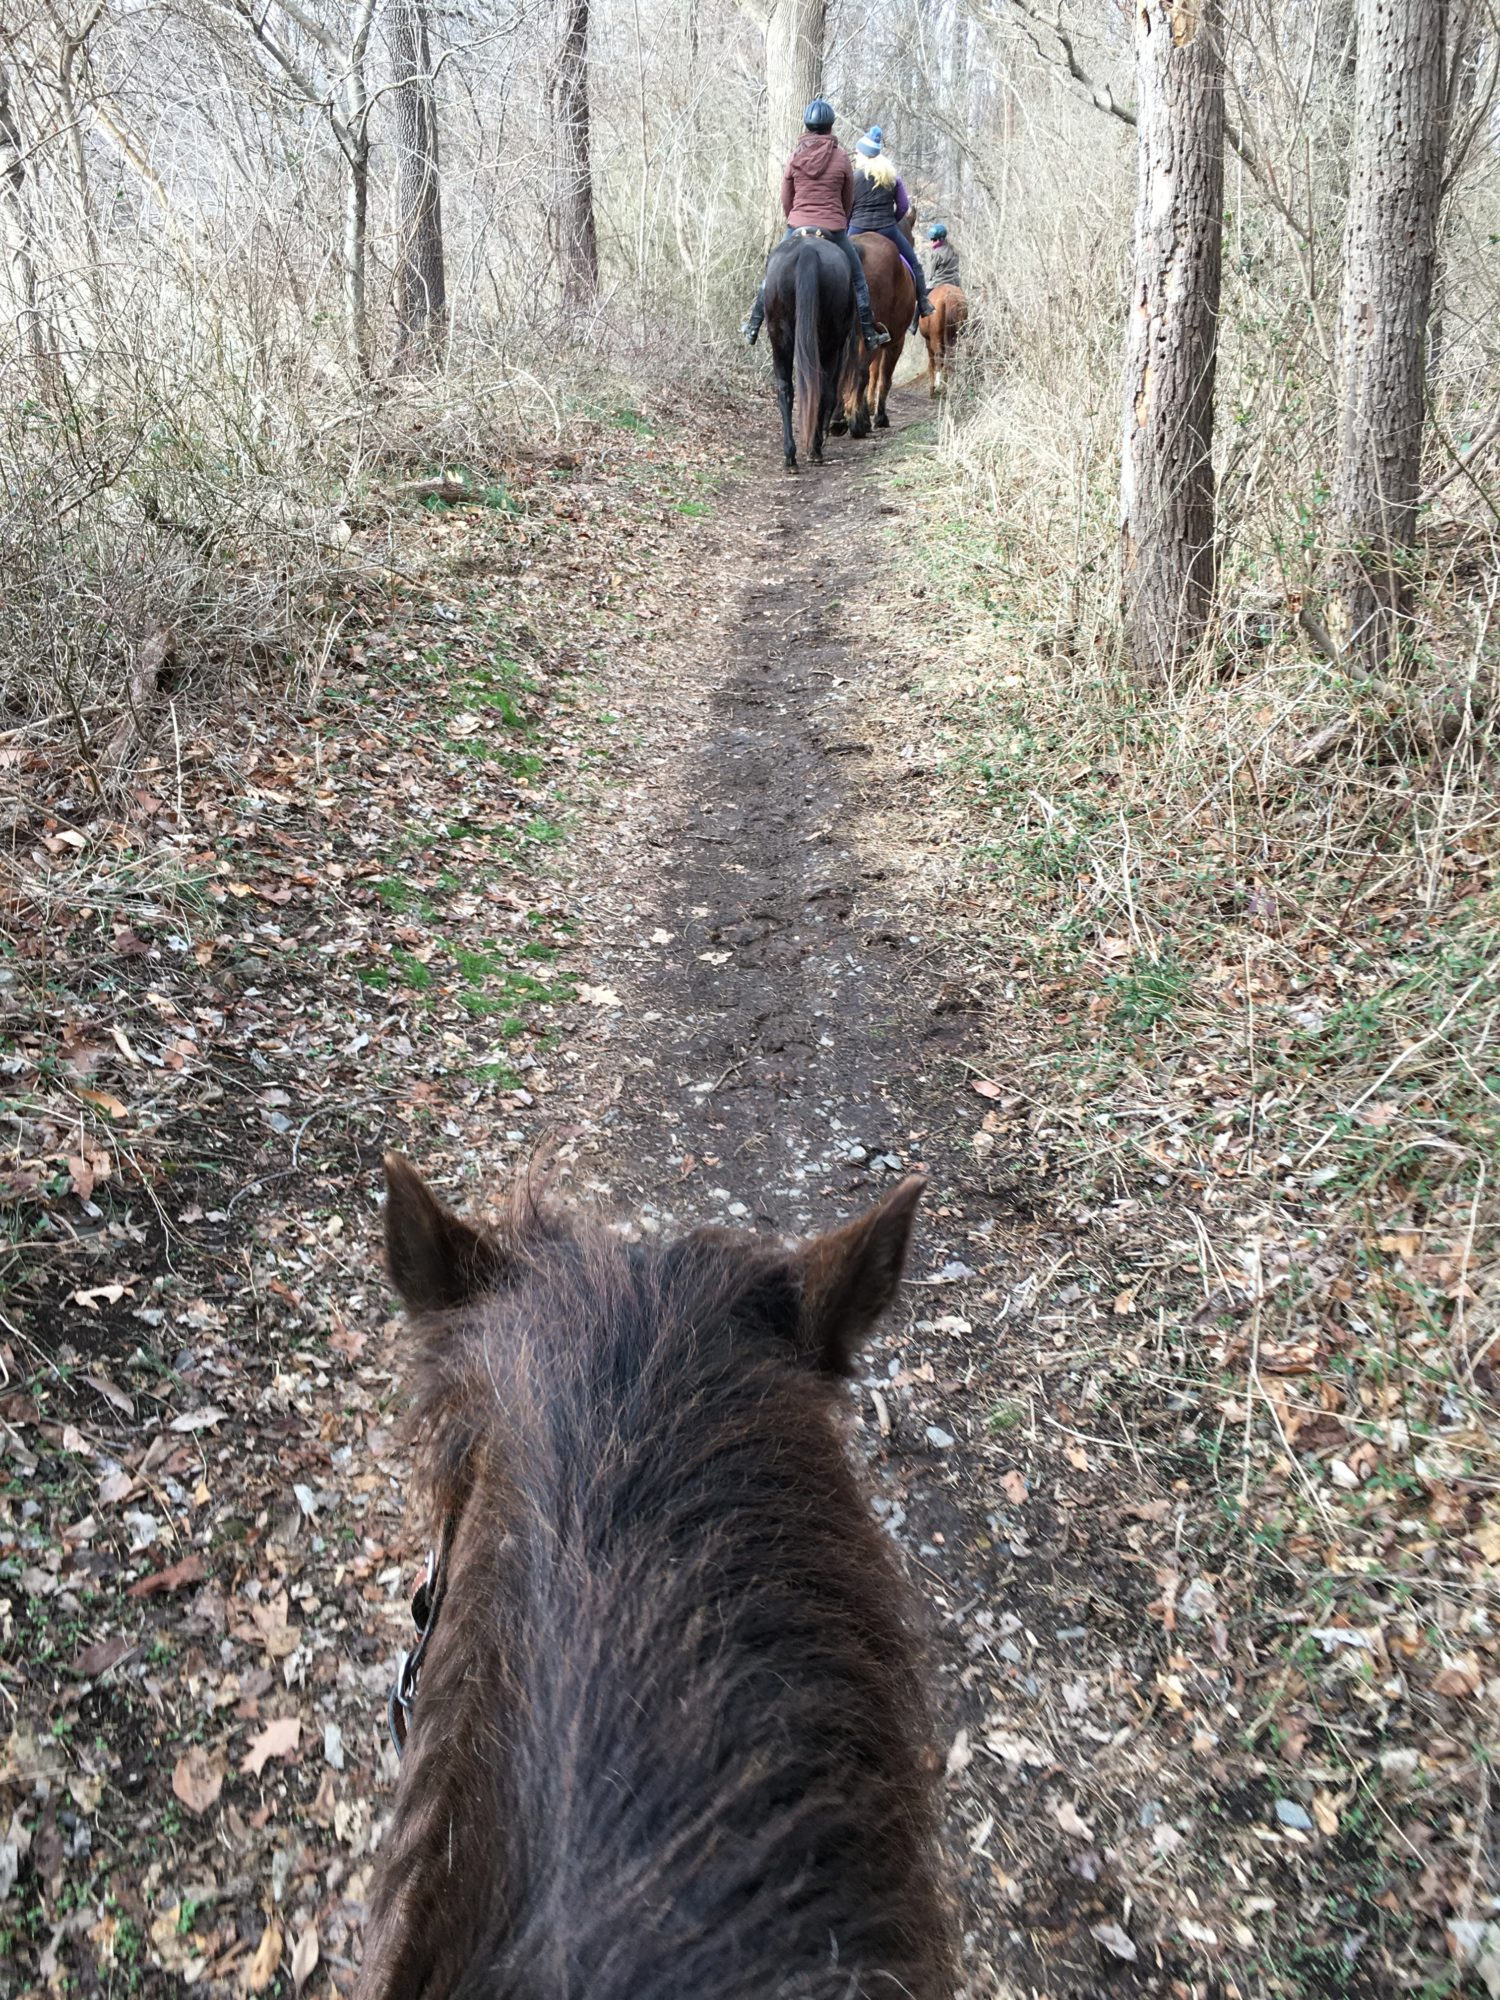 2020-02-16 Riding the Trails